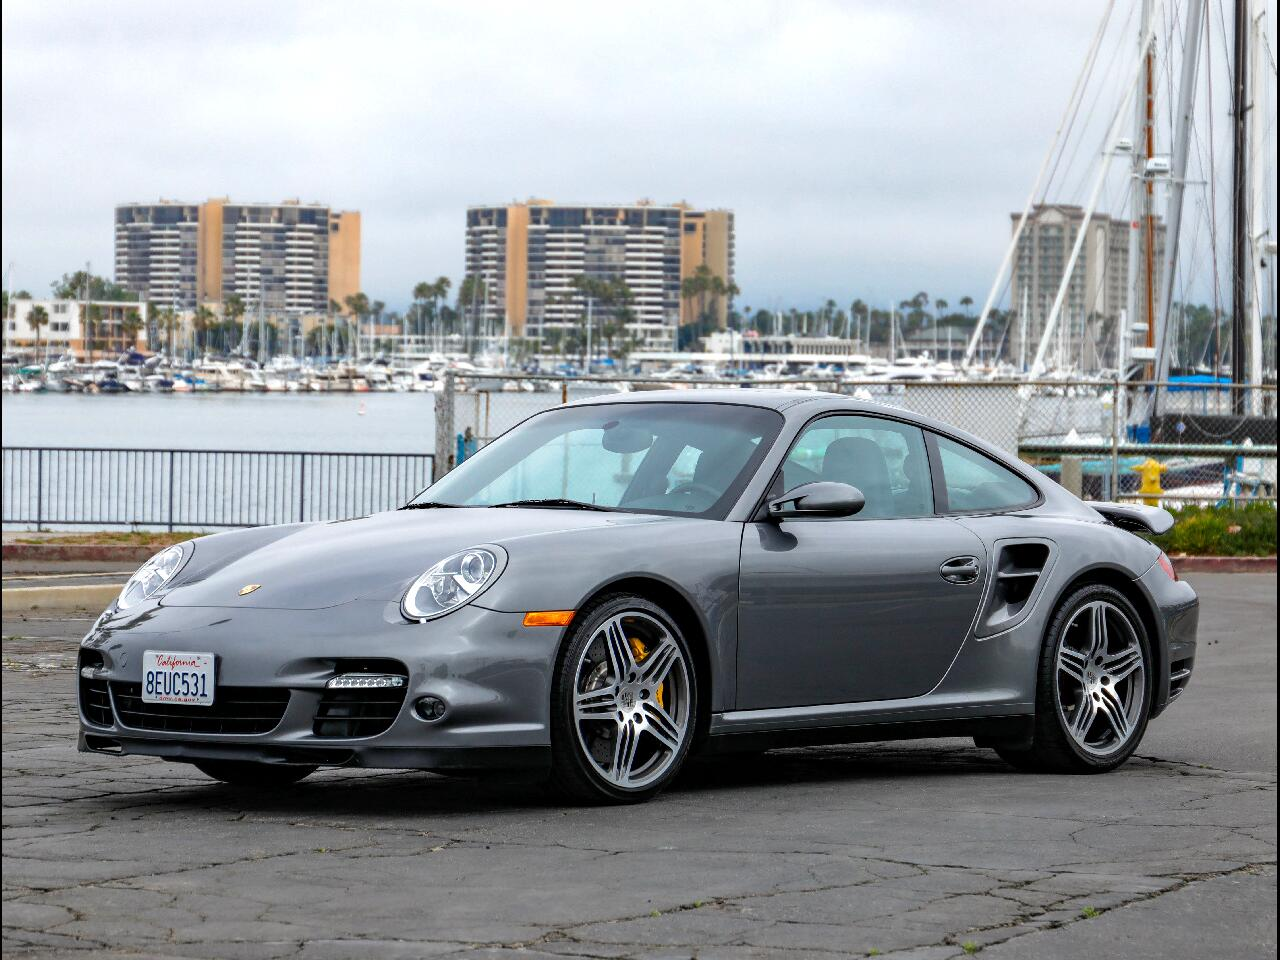 2007 Porsche 911 Turbo 997.1 Coupe